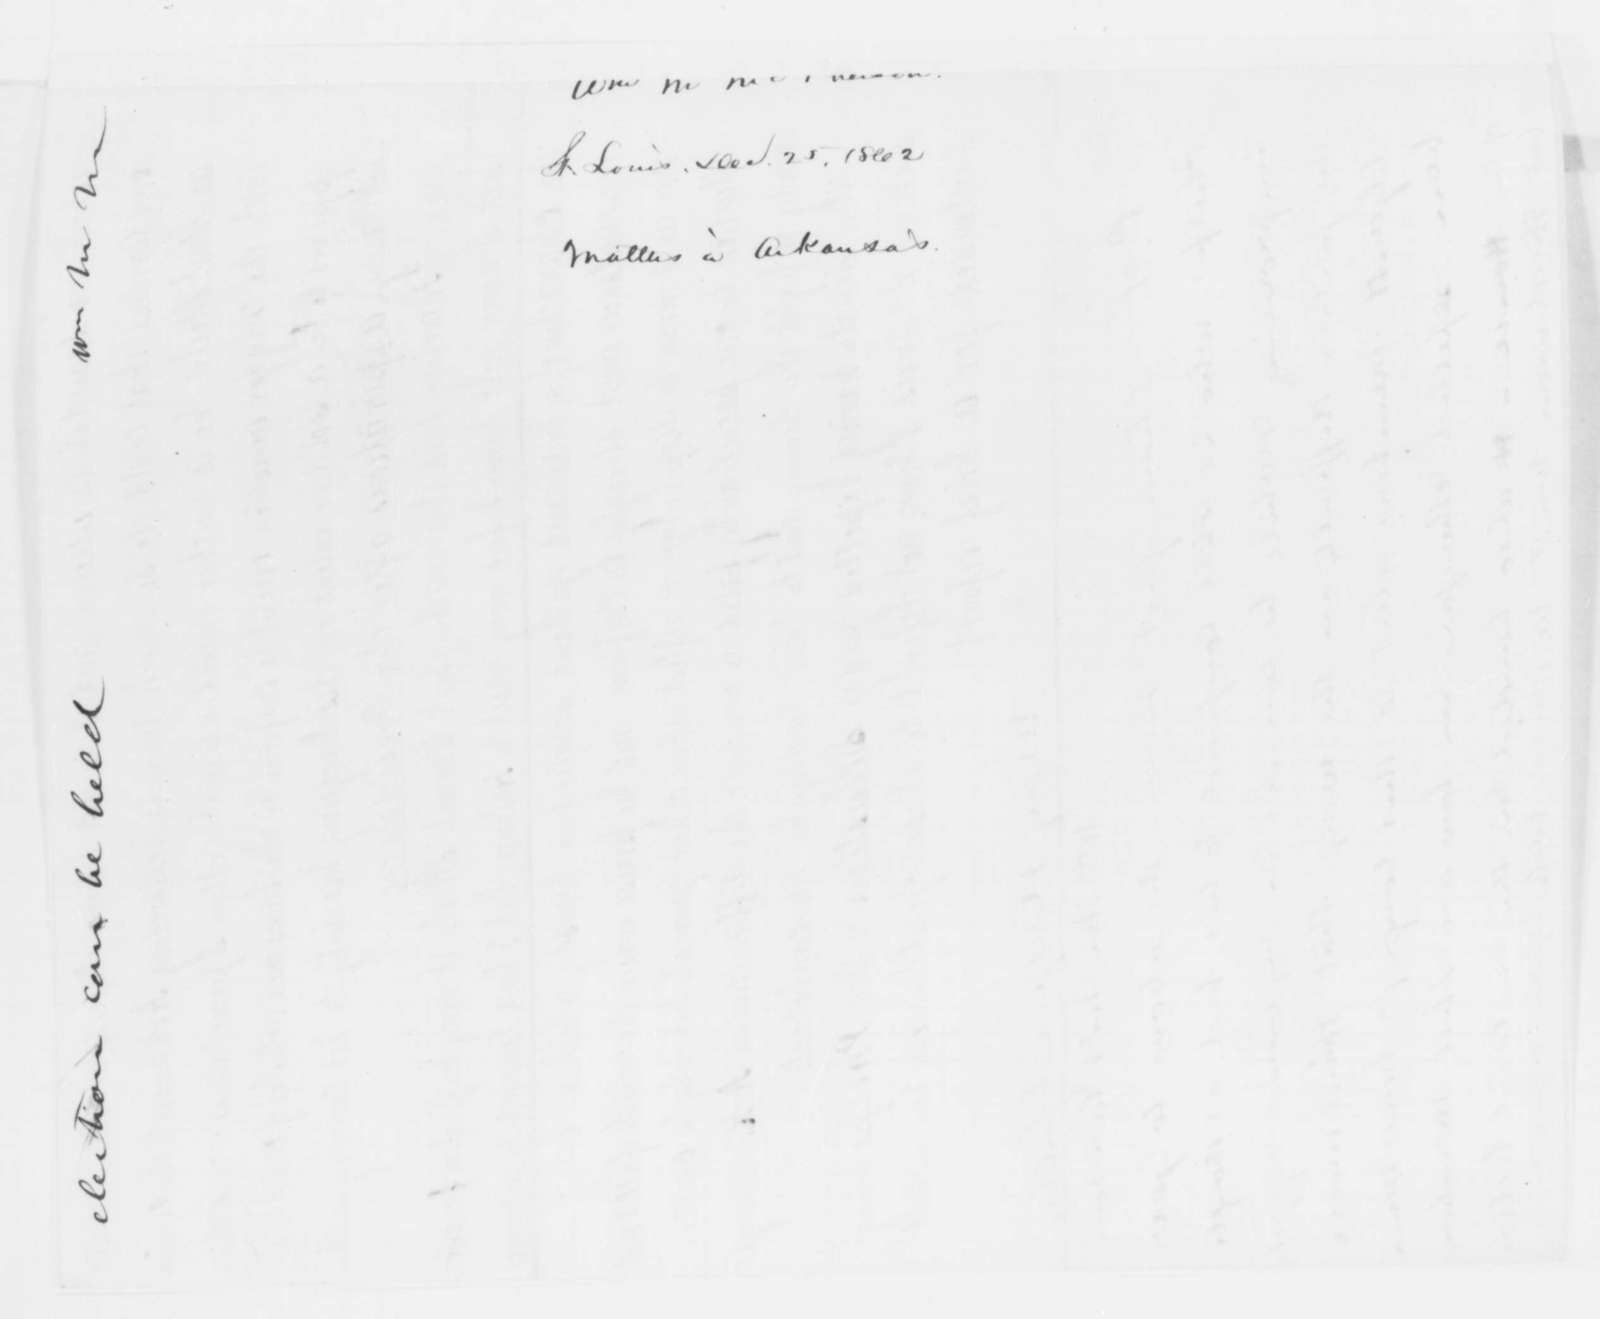 William M. McPherson to Abraham Lincoln, Thursday, December 25, 1862  (Report on political conditions in Arkansas)